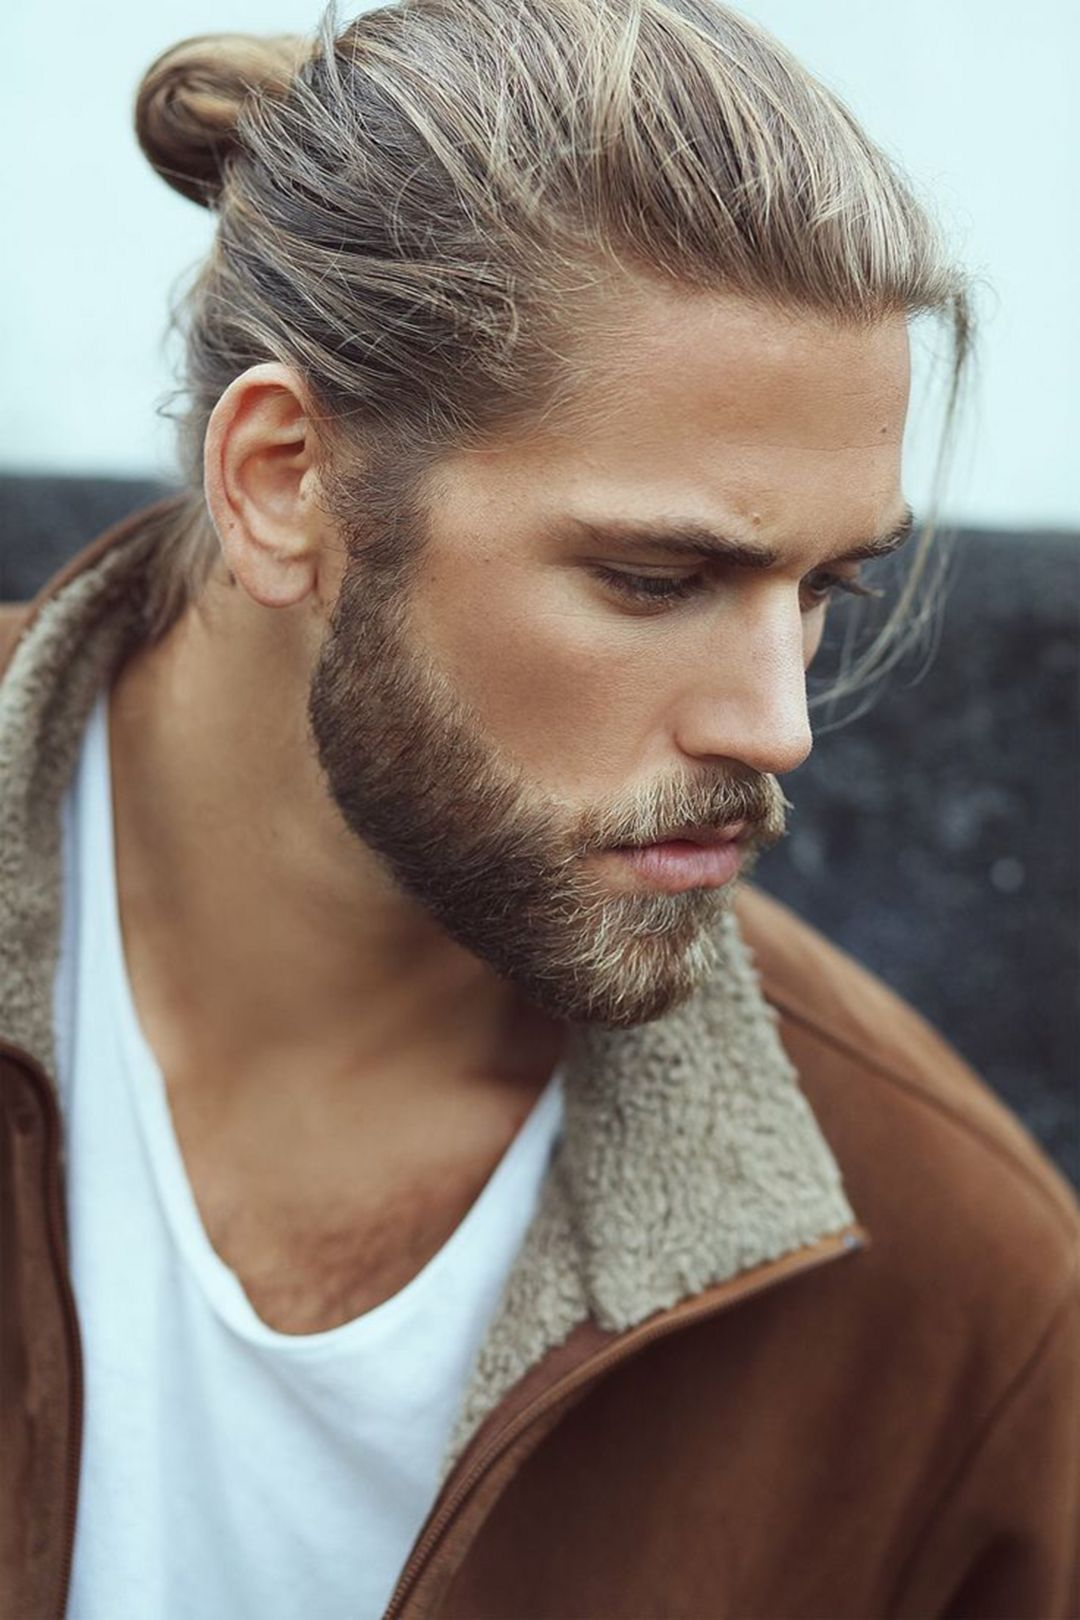 10 Cool Men's Long Hairstyles for You to Have - Fashions Nowadays